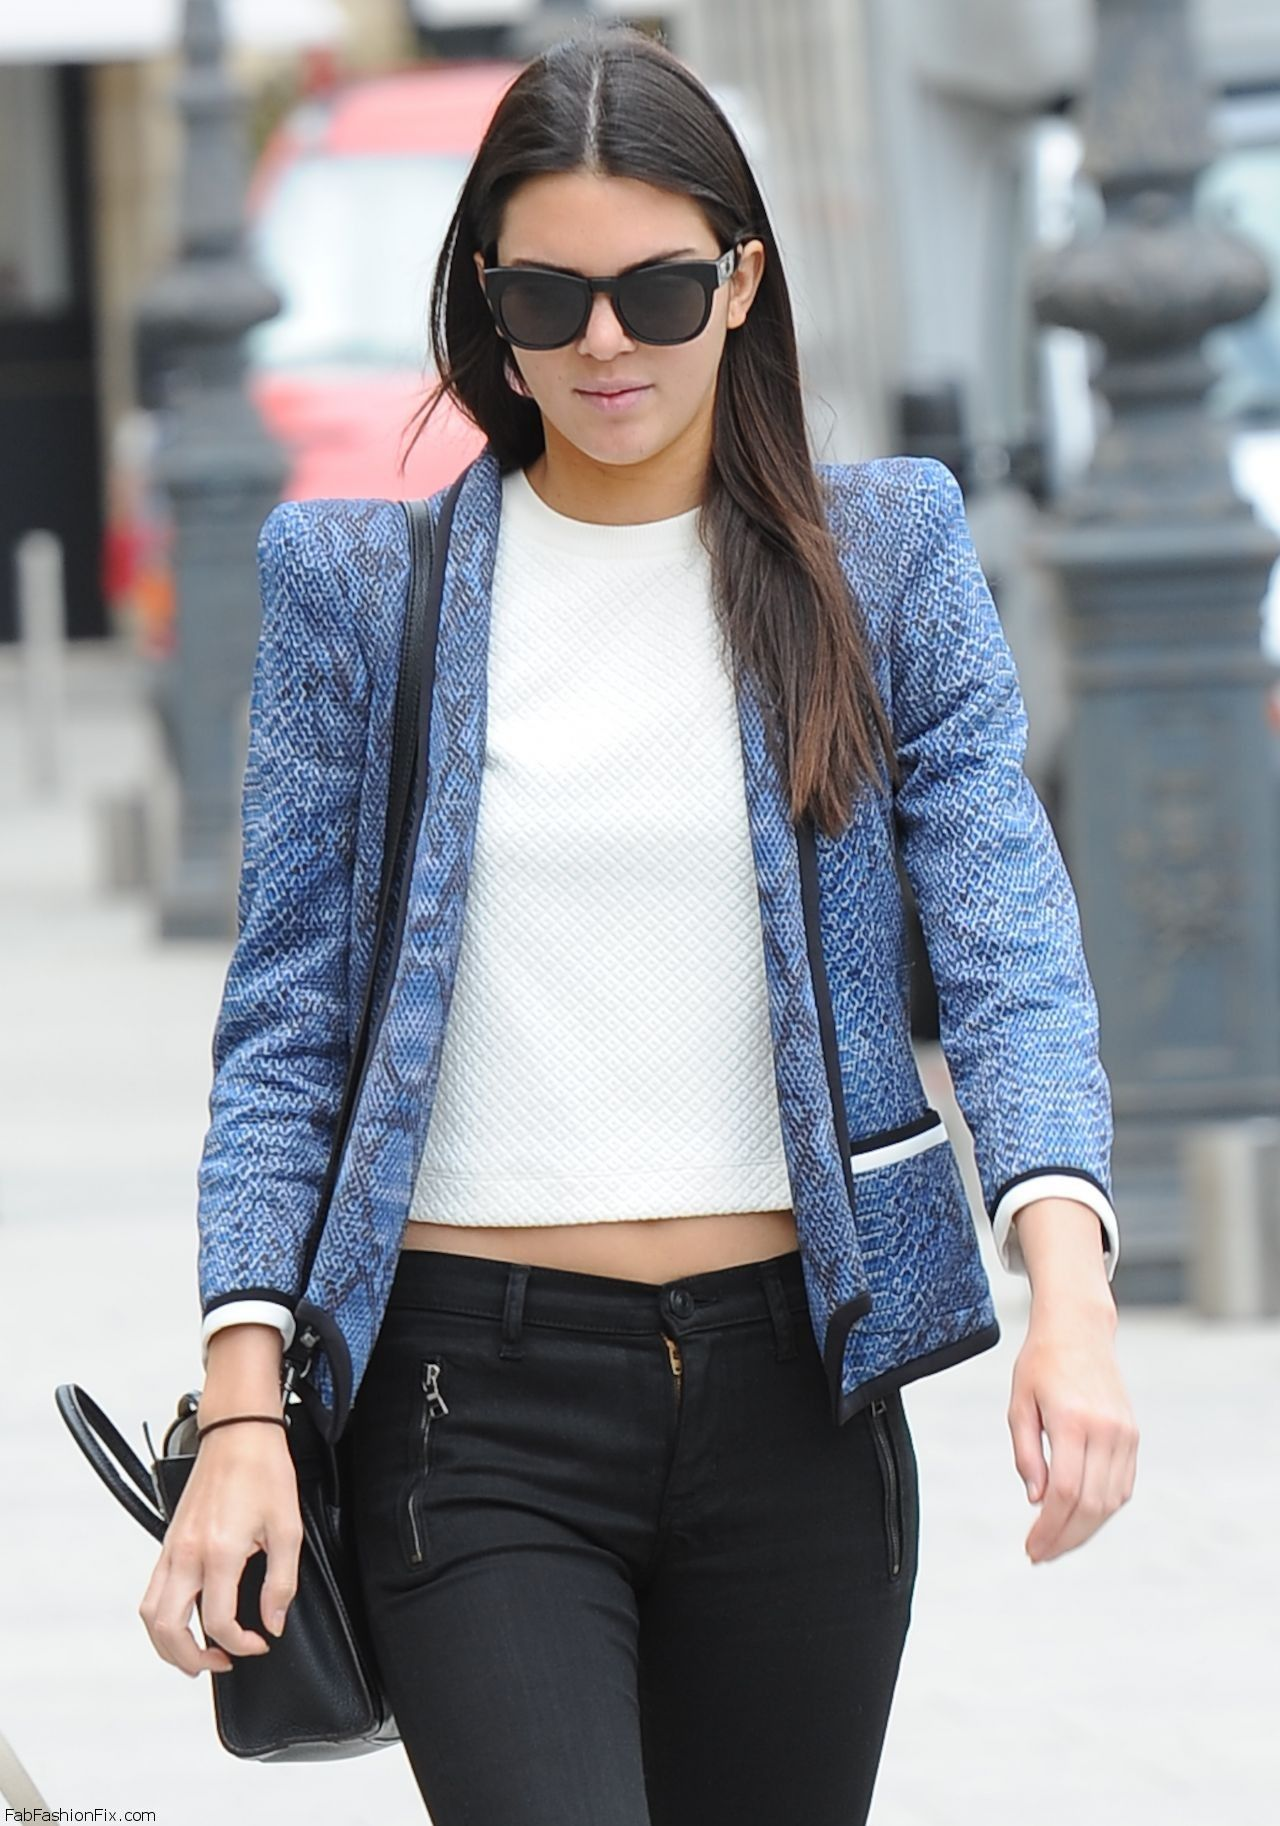 kendall-jenner-shopping-in-paris-july-2014_1